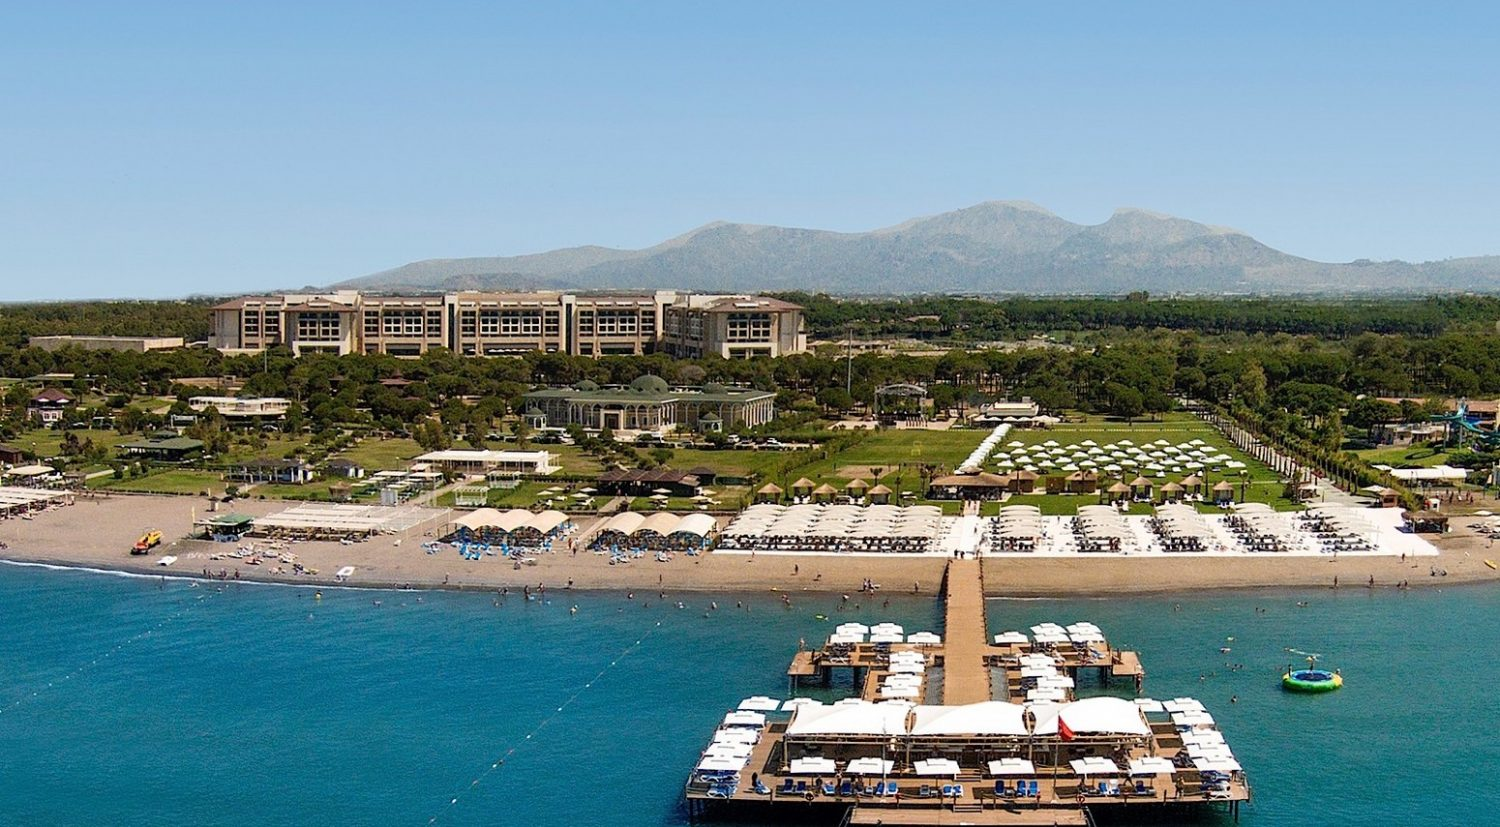 пляж отеля Regnum Carya Golf Resort & Spa